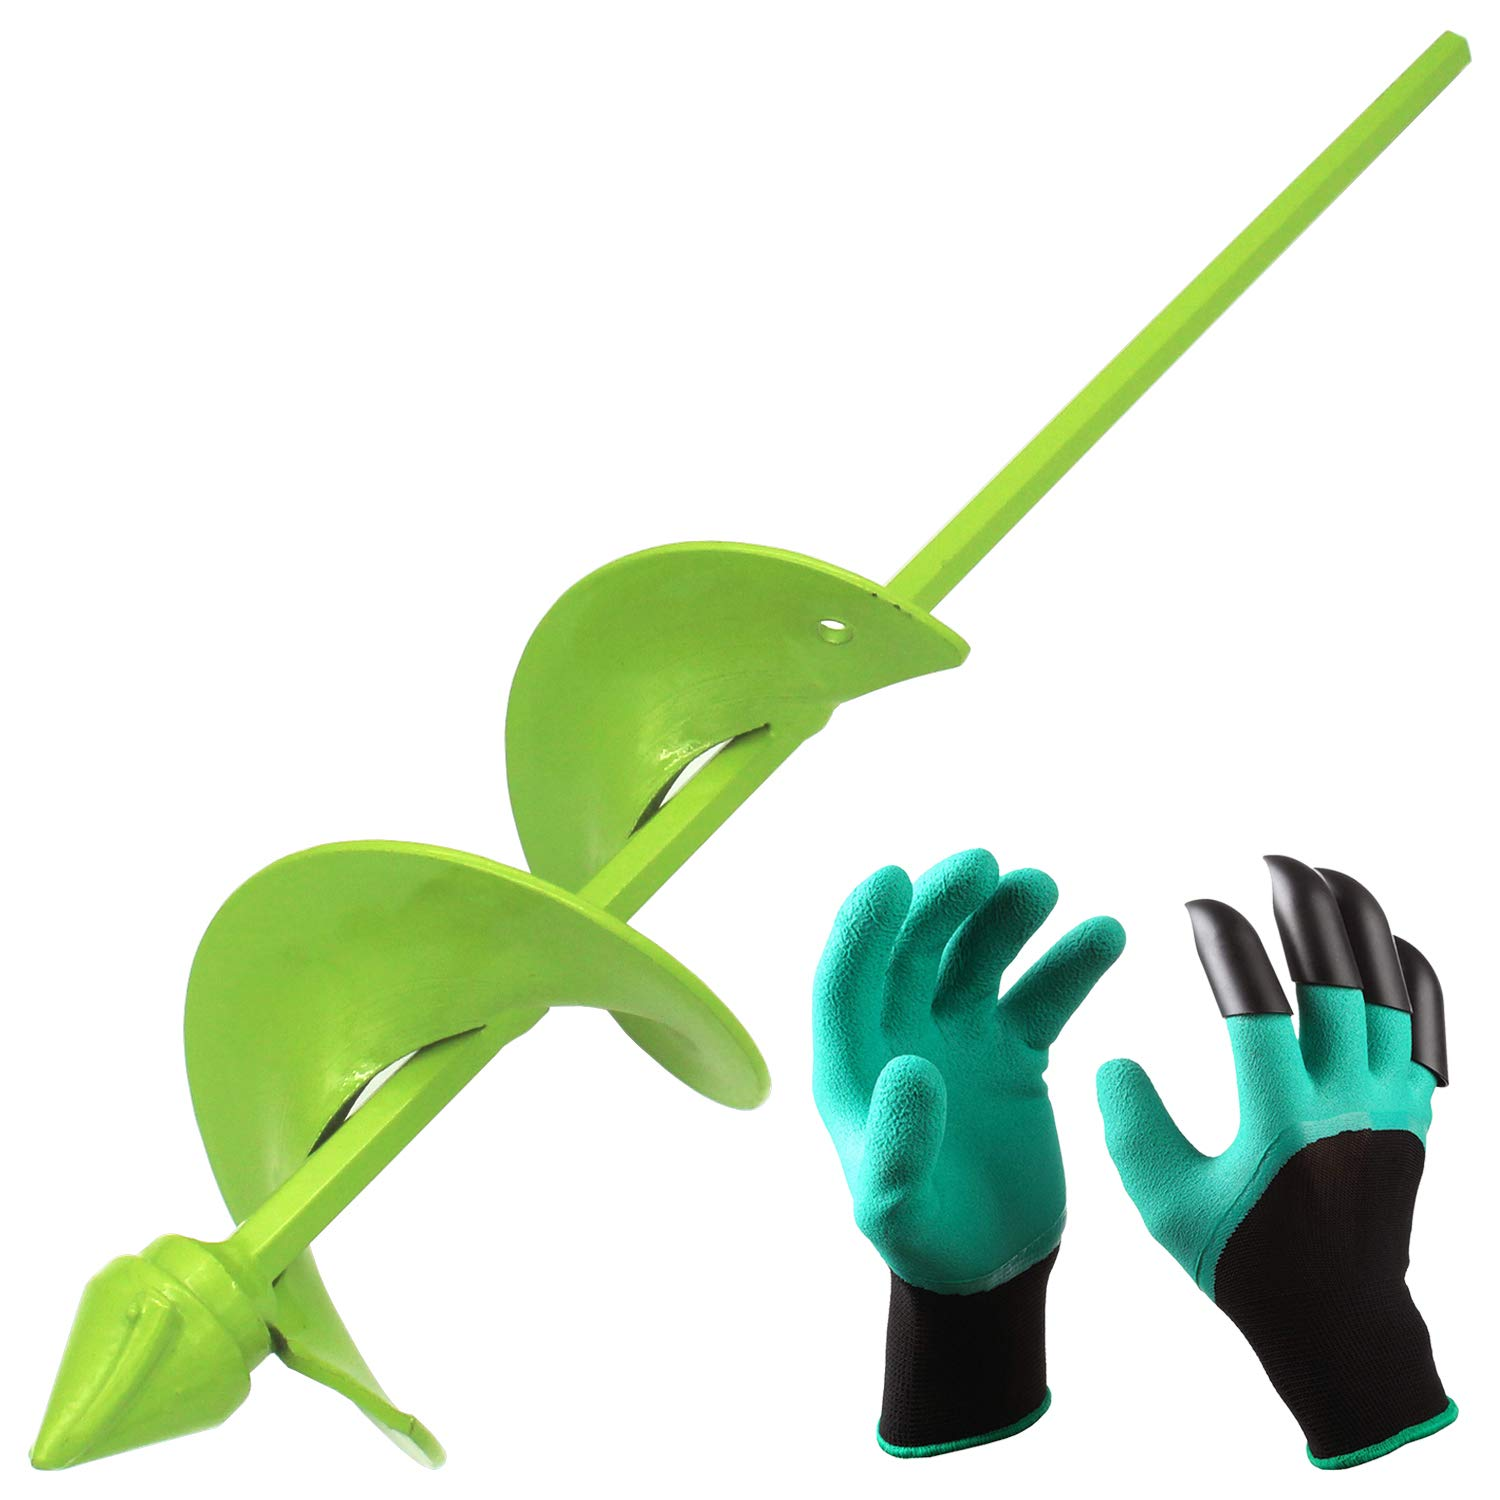 [Upgrade Version]BLIKA Auger Drill Bit, Garden Plant Flower Bulb Auger 3'' x 16'' Rapid Planter with Garden Genie Gloves, Earth Auger Bit, Non-Slip Hex Drive fits Any 3/8-inch Drill by BLIKA